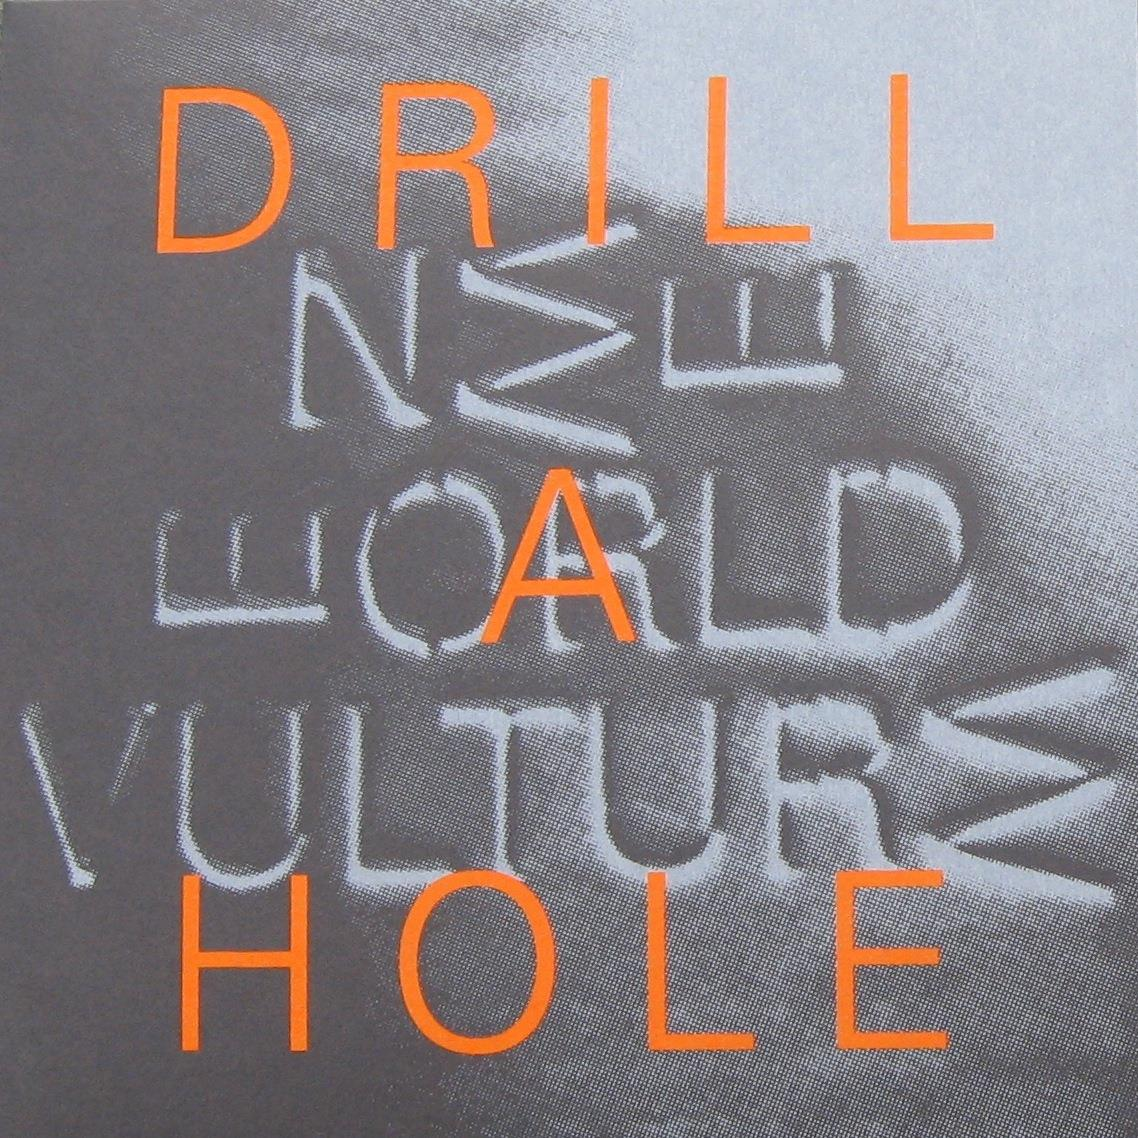 FY088 Fysisk Format  New World Vulture Drill a Hole (7'')